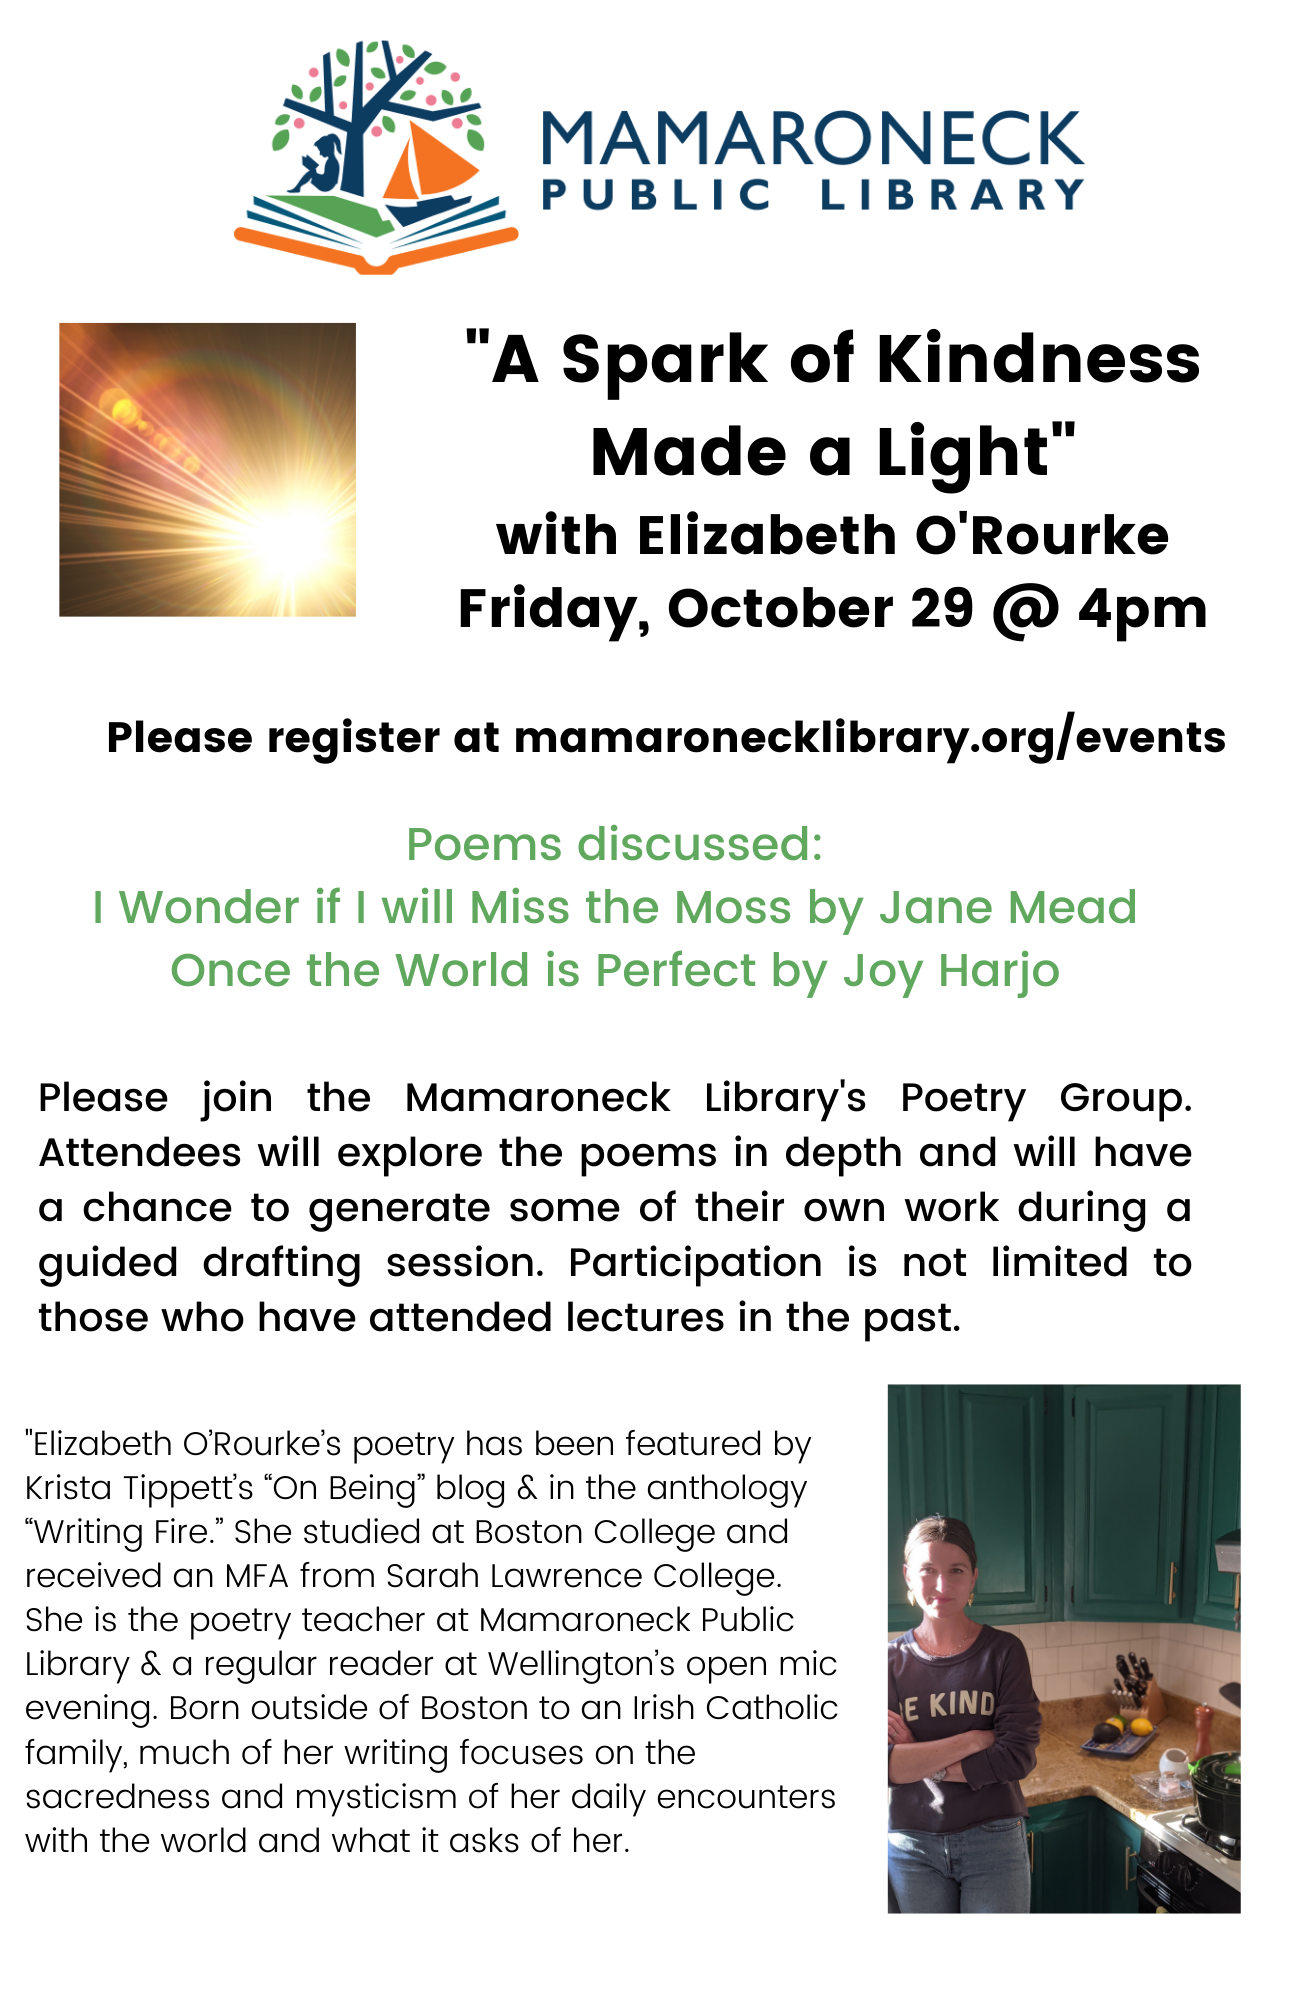 Poetry reading and discussion on friday Oct. 29 via zoom